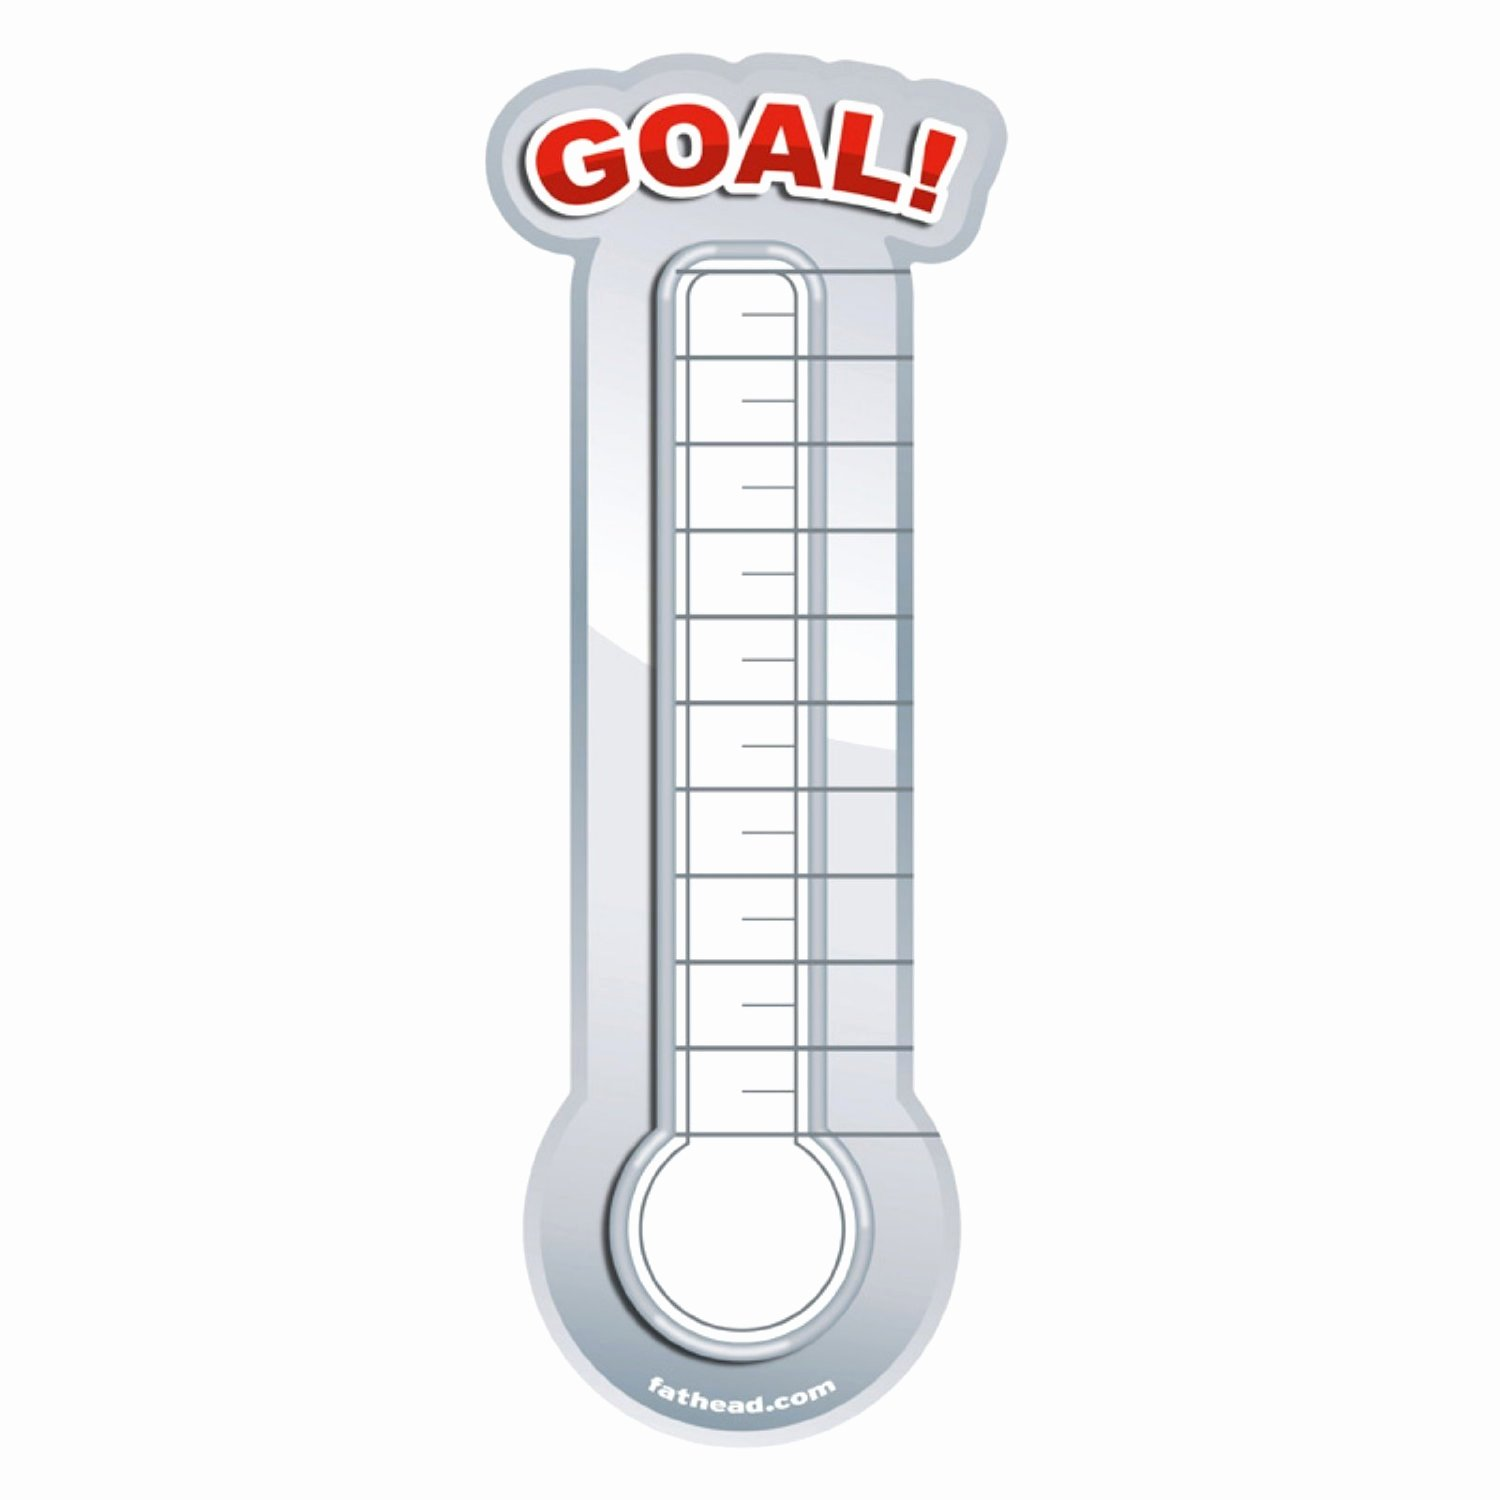 Goal thermometer Template Excel Unique Fundraising thermometer Template